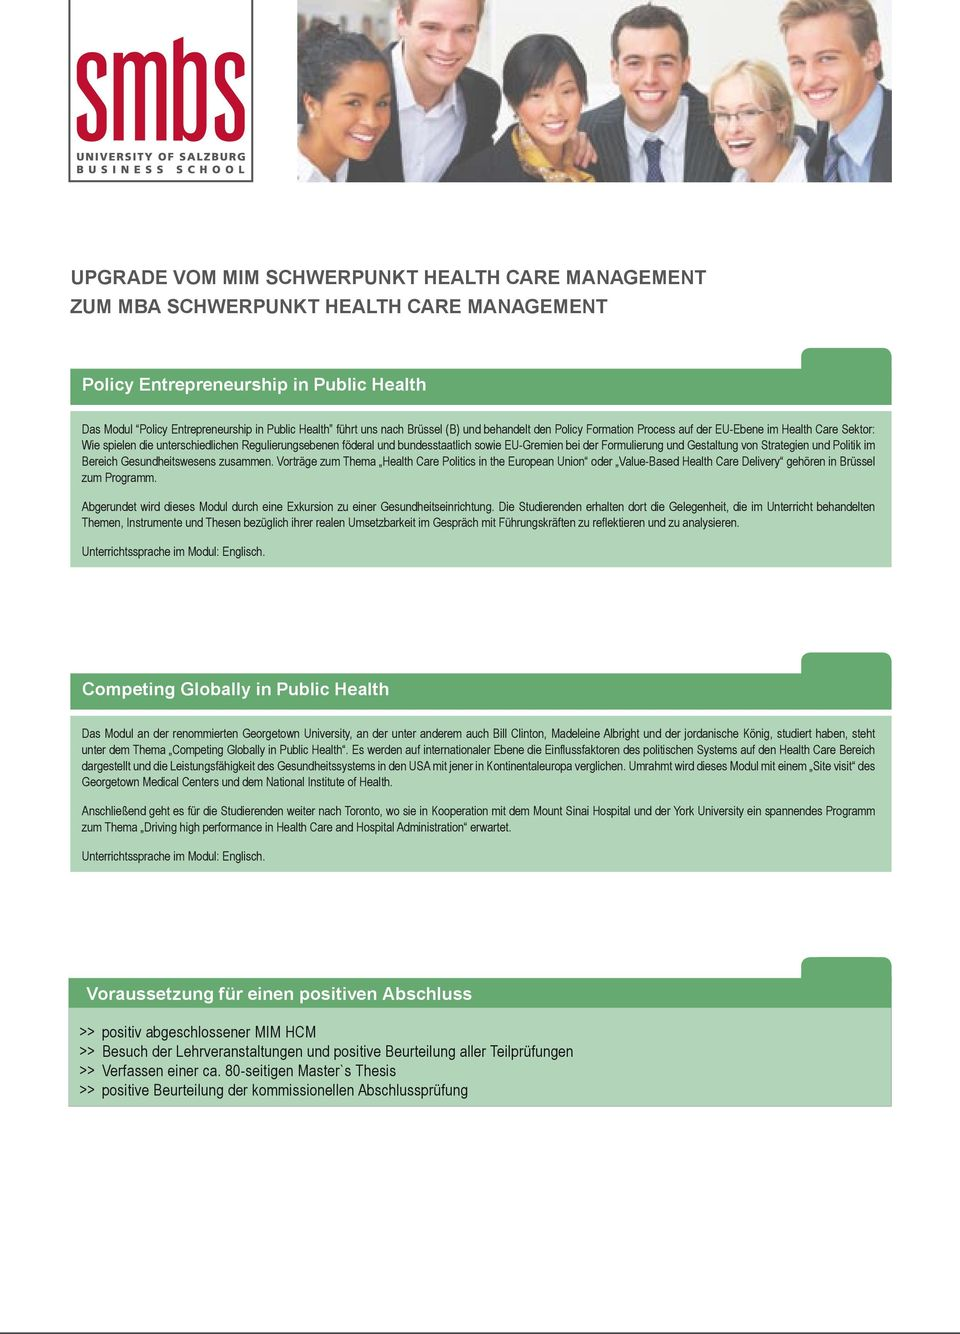 Bereich Gesundheitswesens zusammen. Vorträge zum Thema Health Care Politics in the European Union oder Value-Based Health Care Delivery gehören in Brüssel zum Programm.